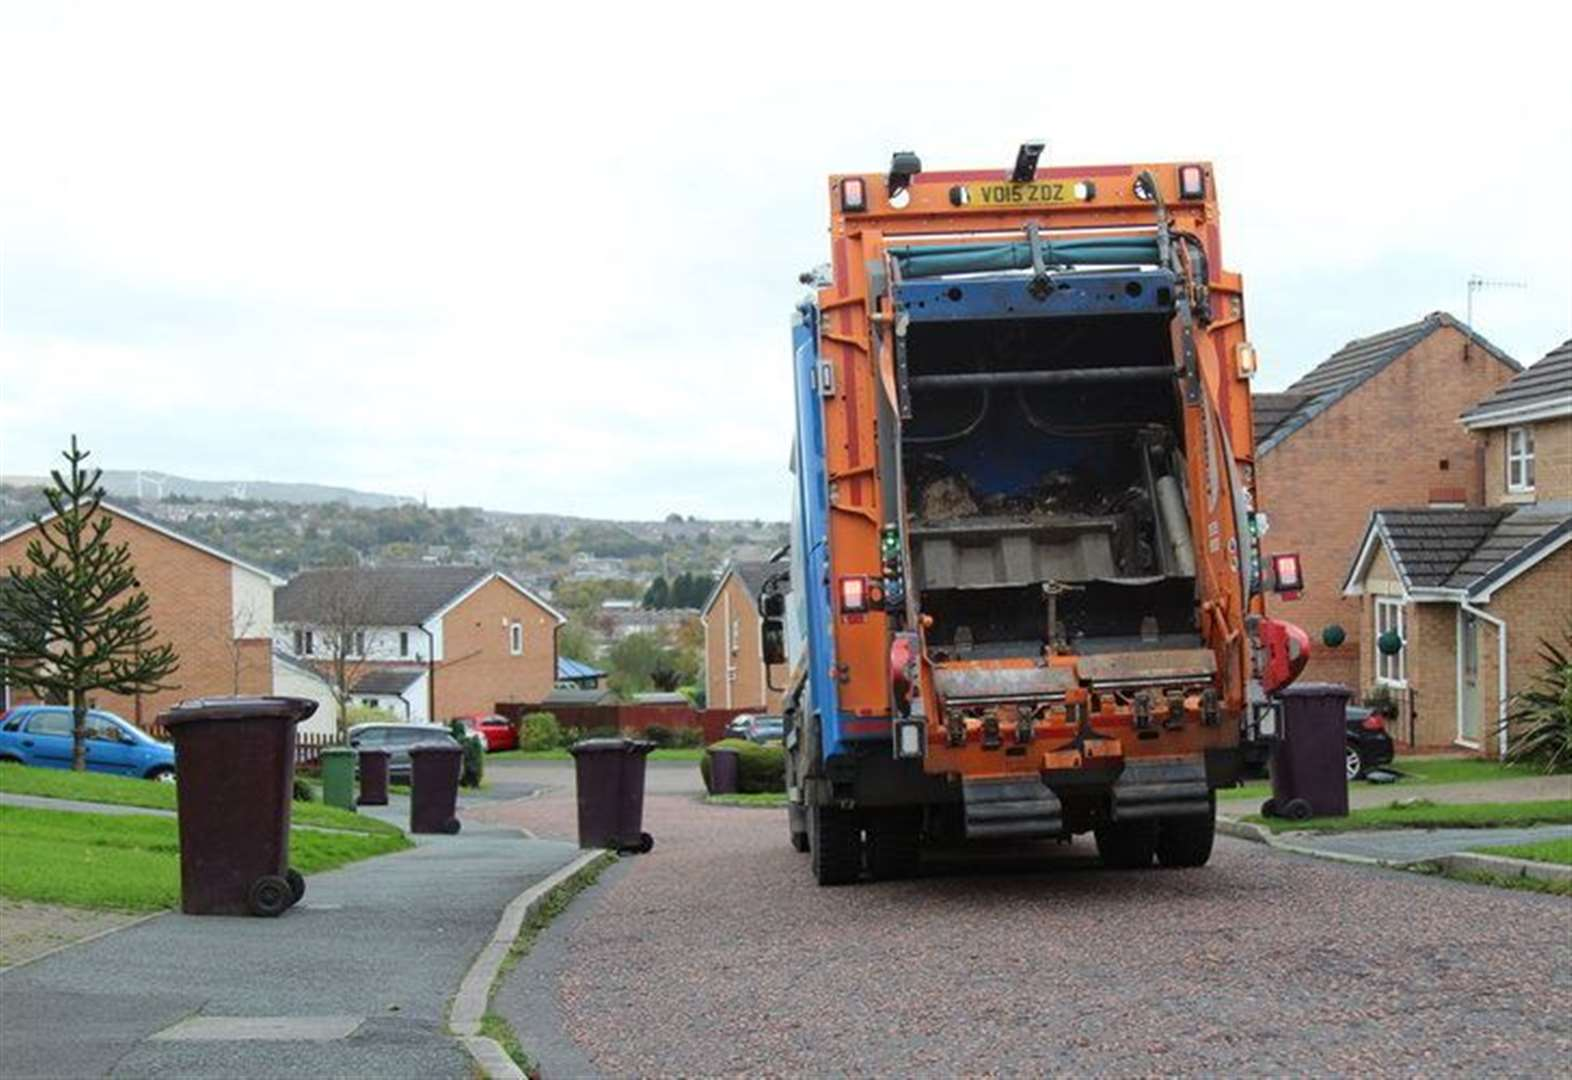 Councillors meet to discuss new waste collection services